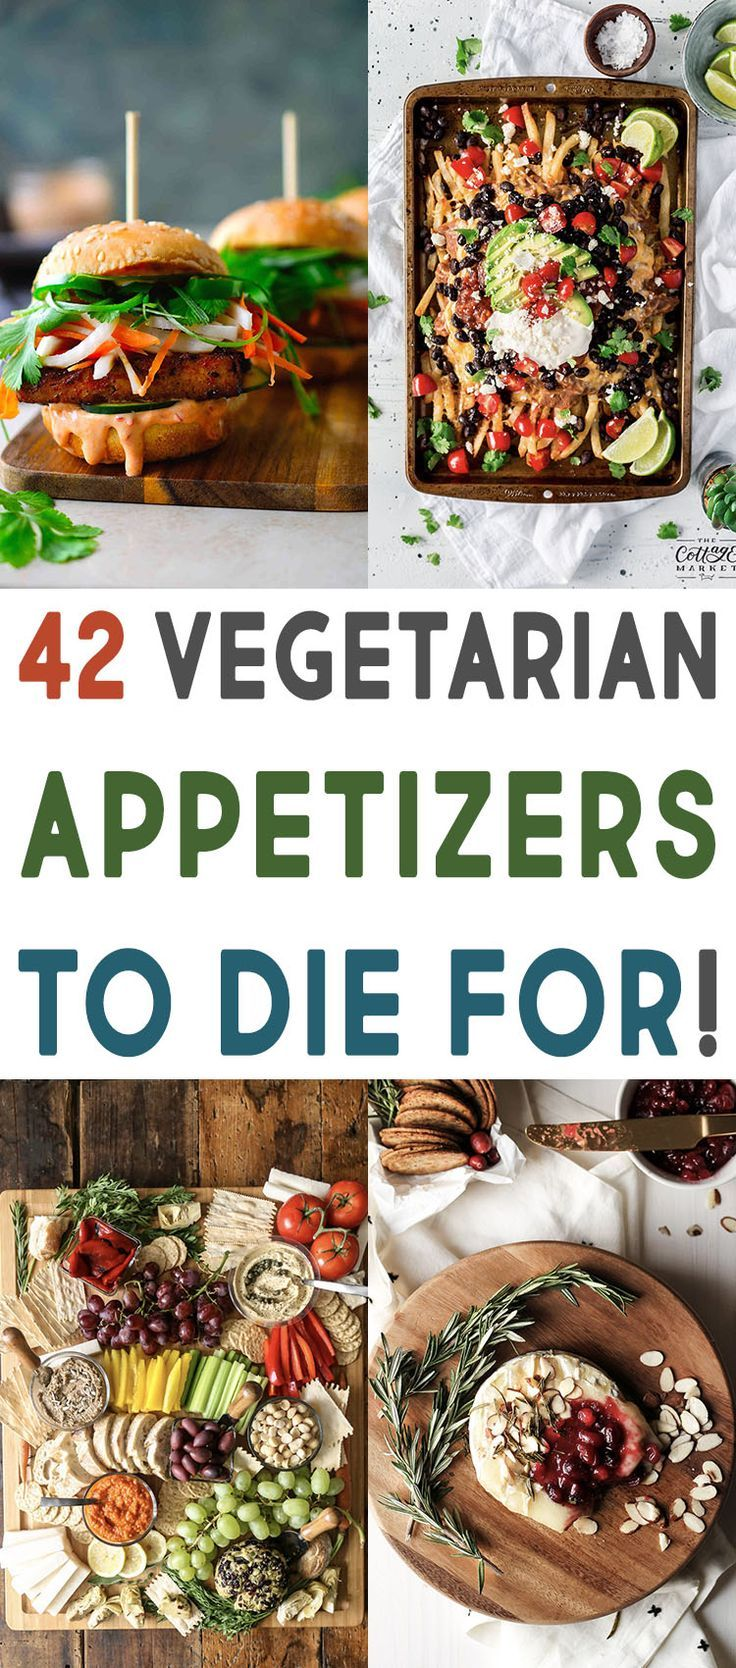 42 Vegetarian Appetizers To Die For The Cottage Market Vegetarian Appetizers Vegetarian Party Appetizers Vegetarian Party Food